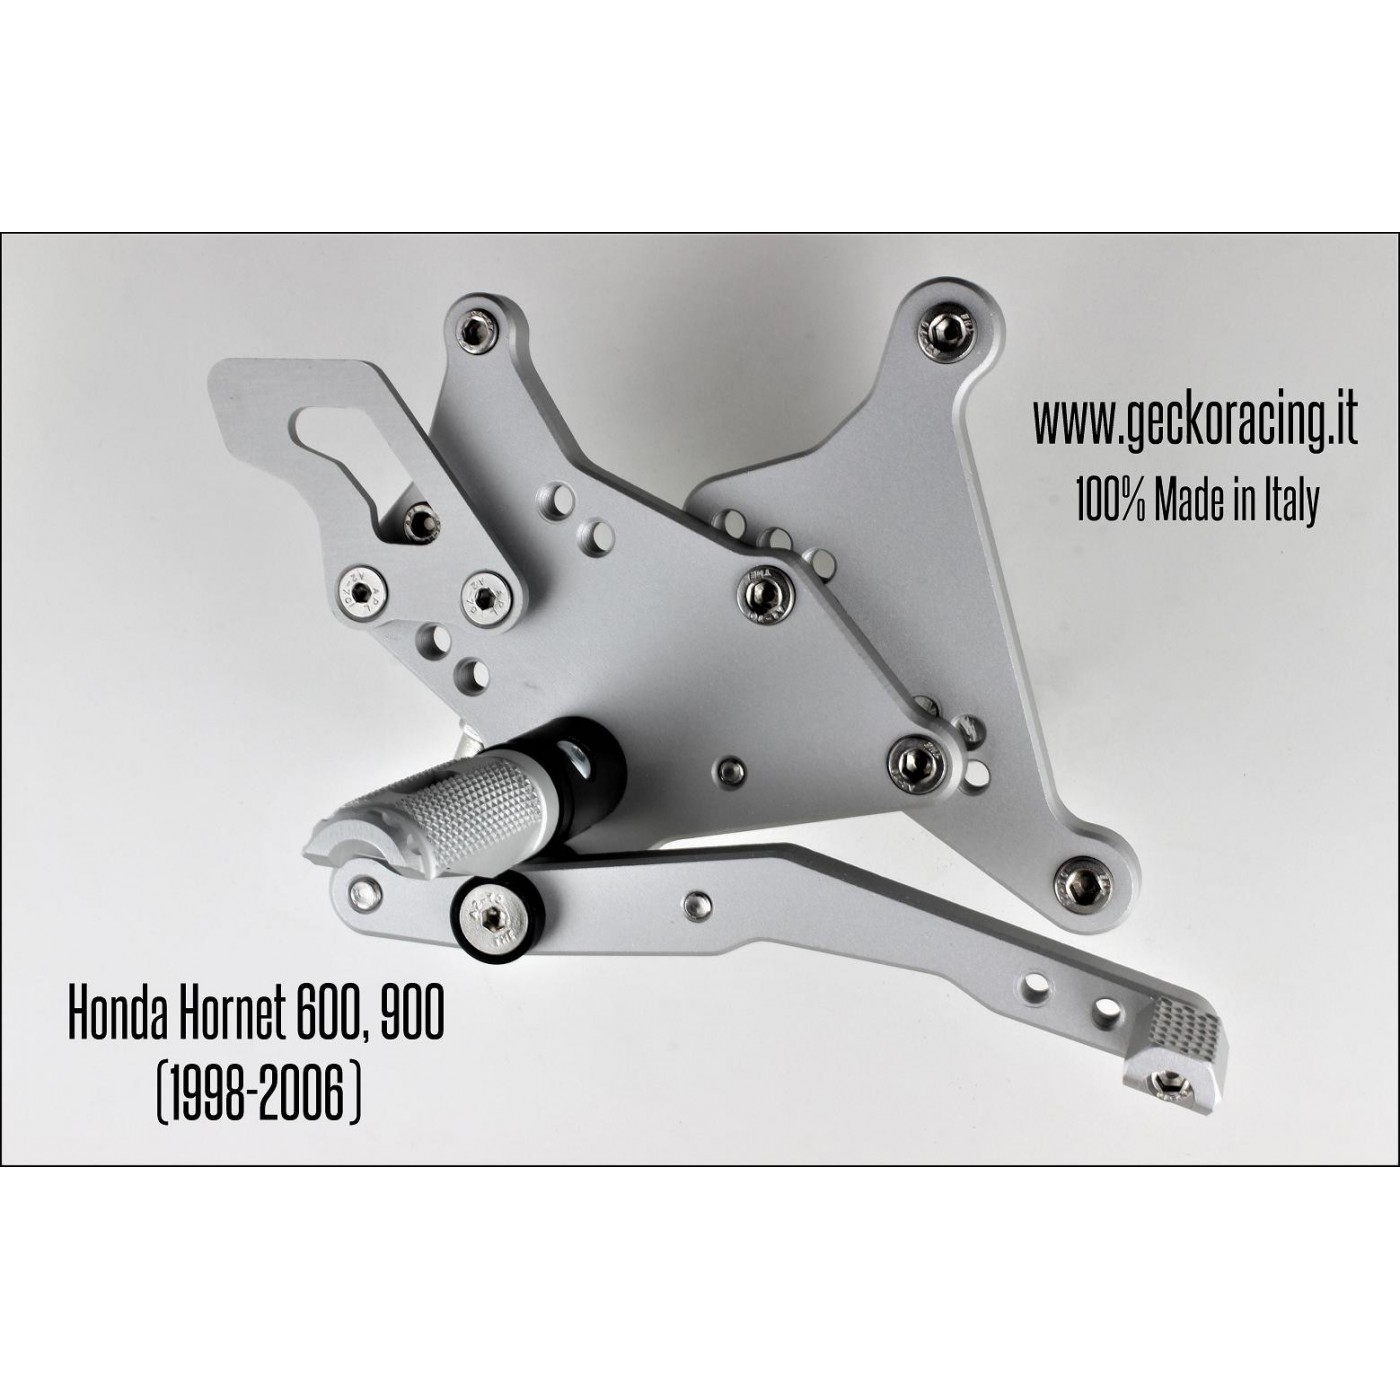 Rearsets Adjustable Honda Hornet 600, 900 Freno